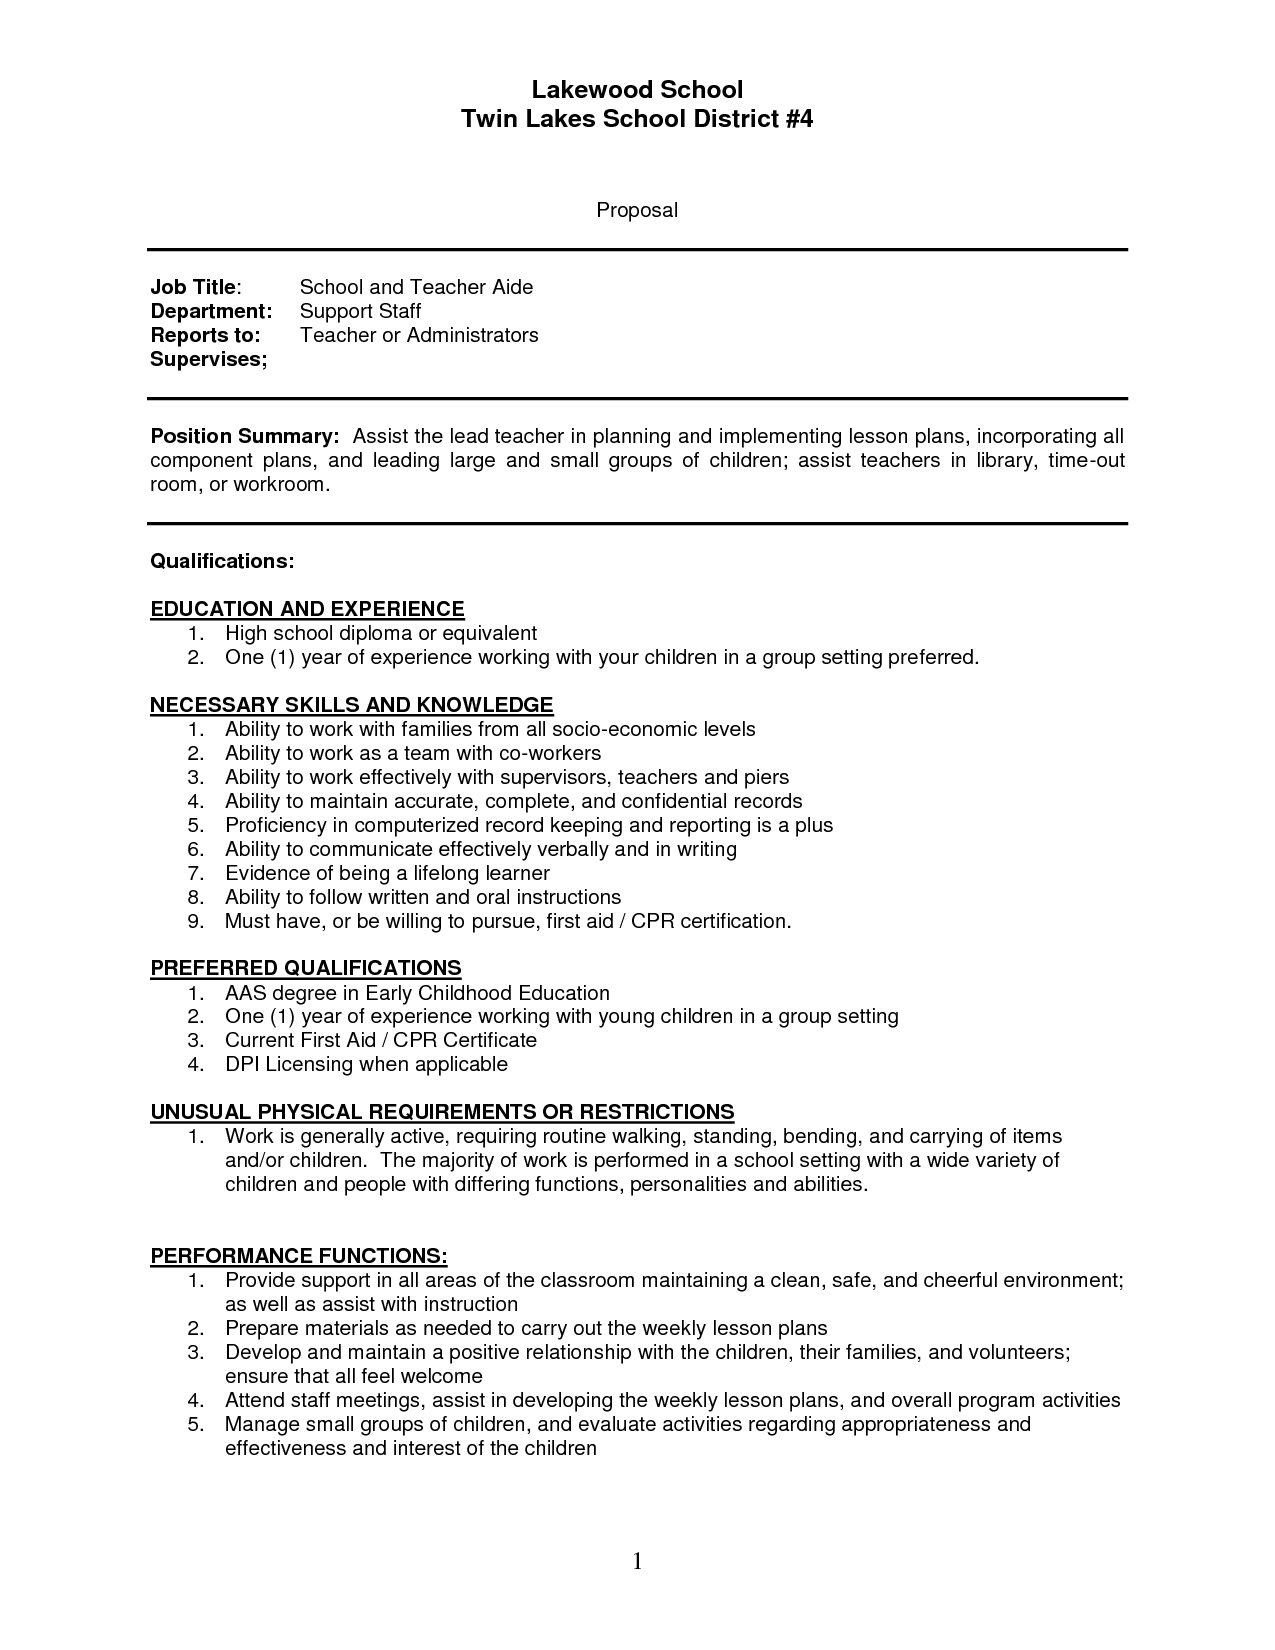 teacher assistant sample resume sample resume of teachers aides ...